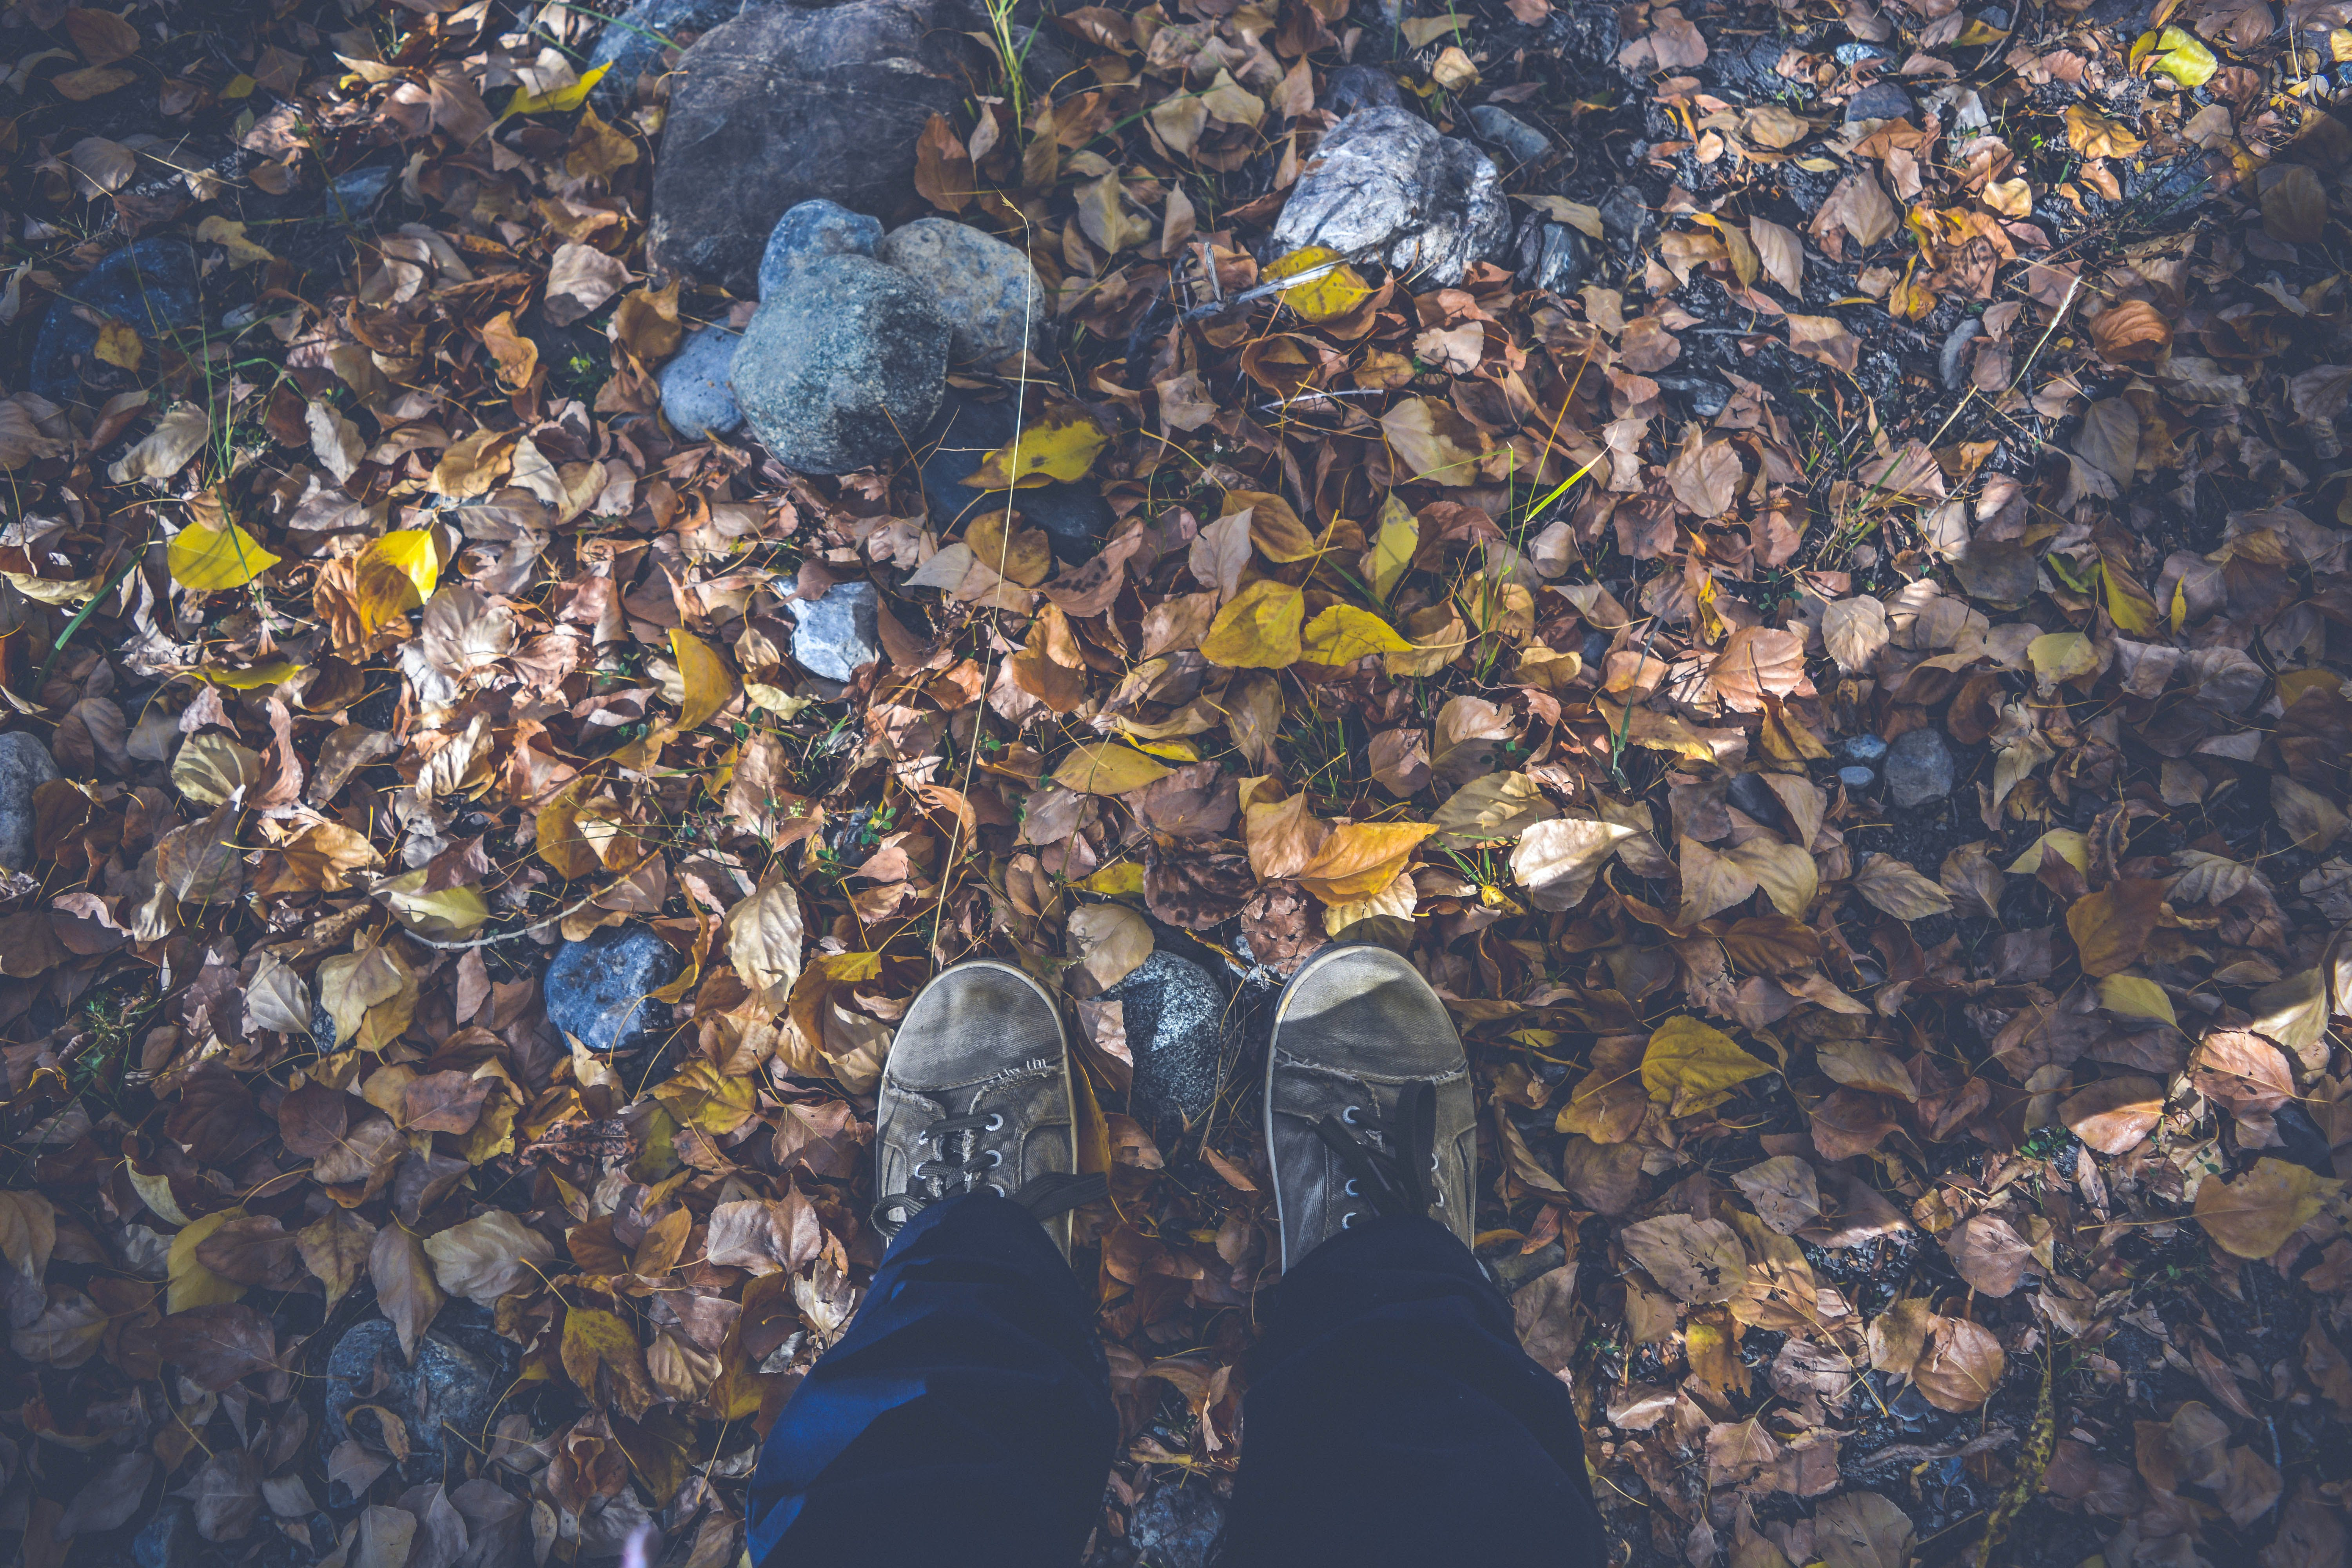 Person in Black Pants and Gray Low Top Shoes Stand on Dried Leaves and Rocks during Daytime